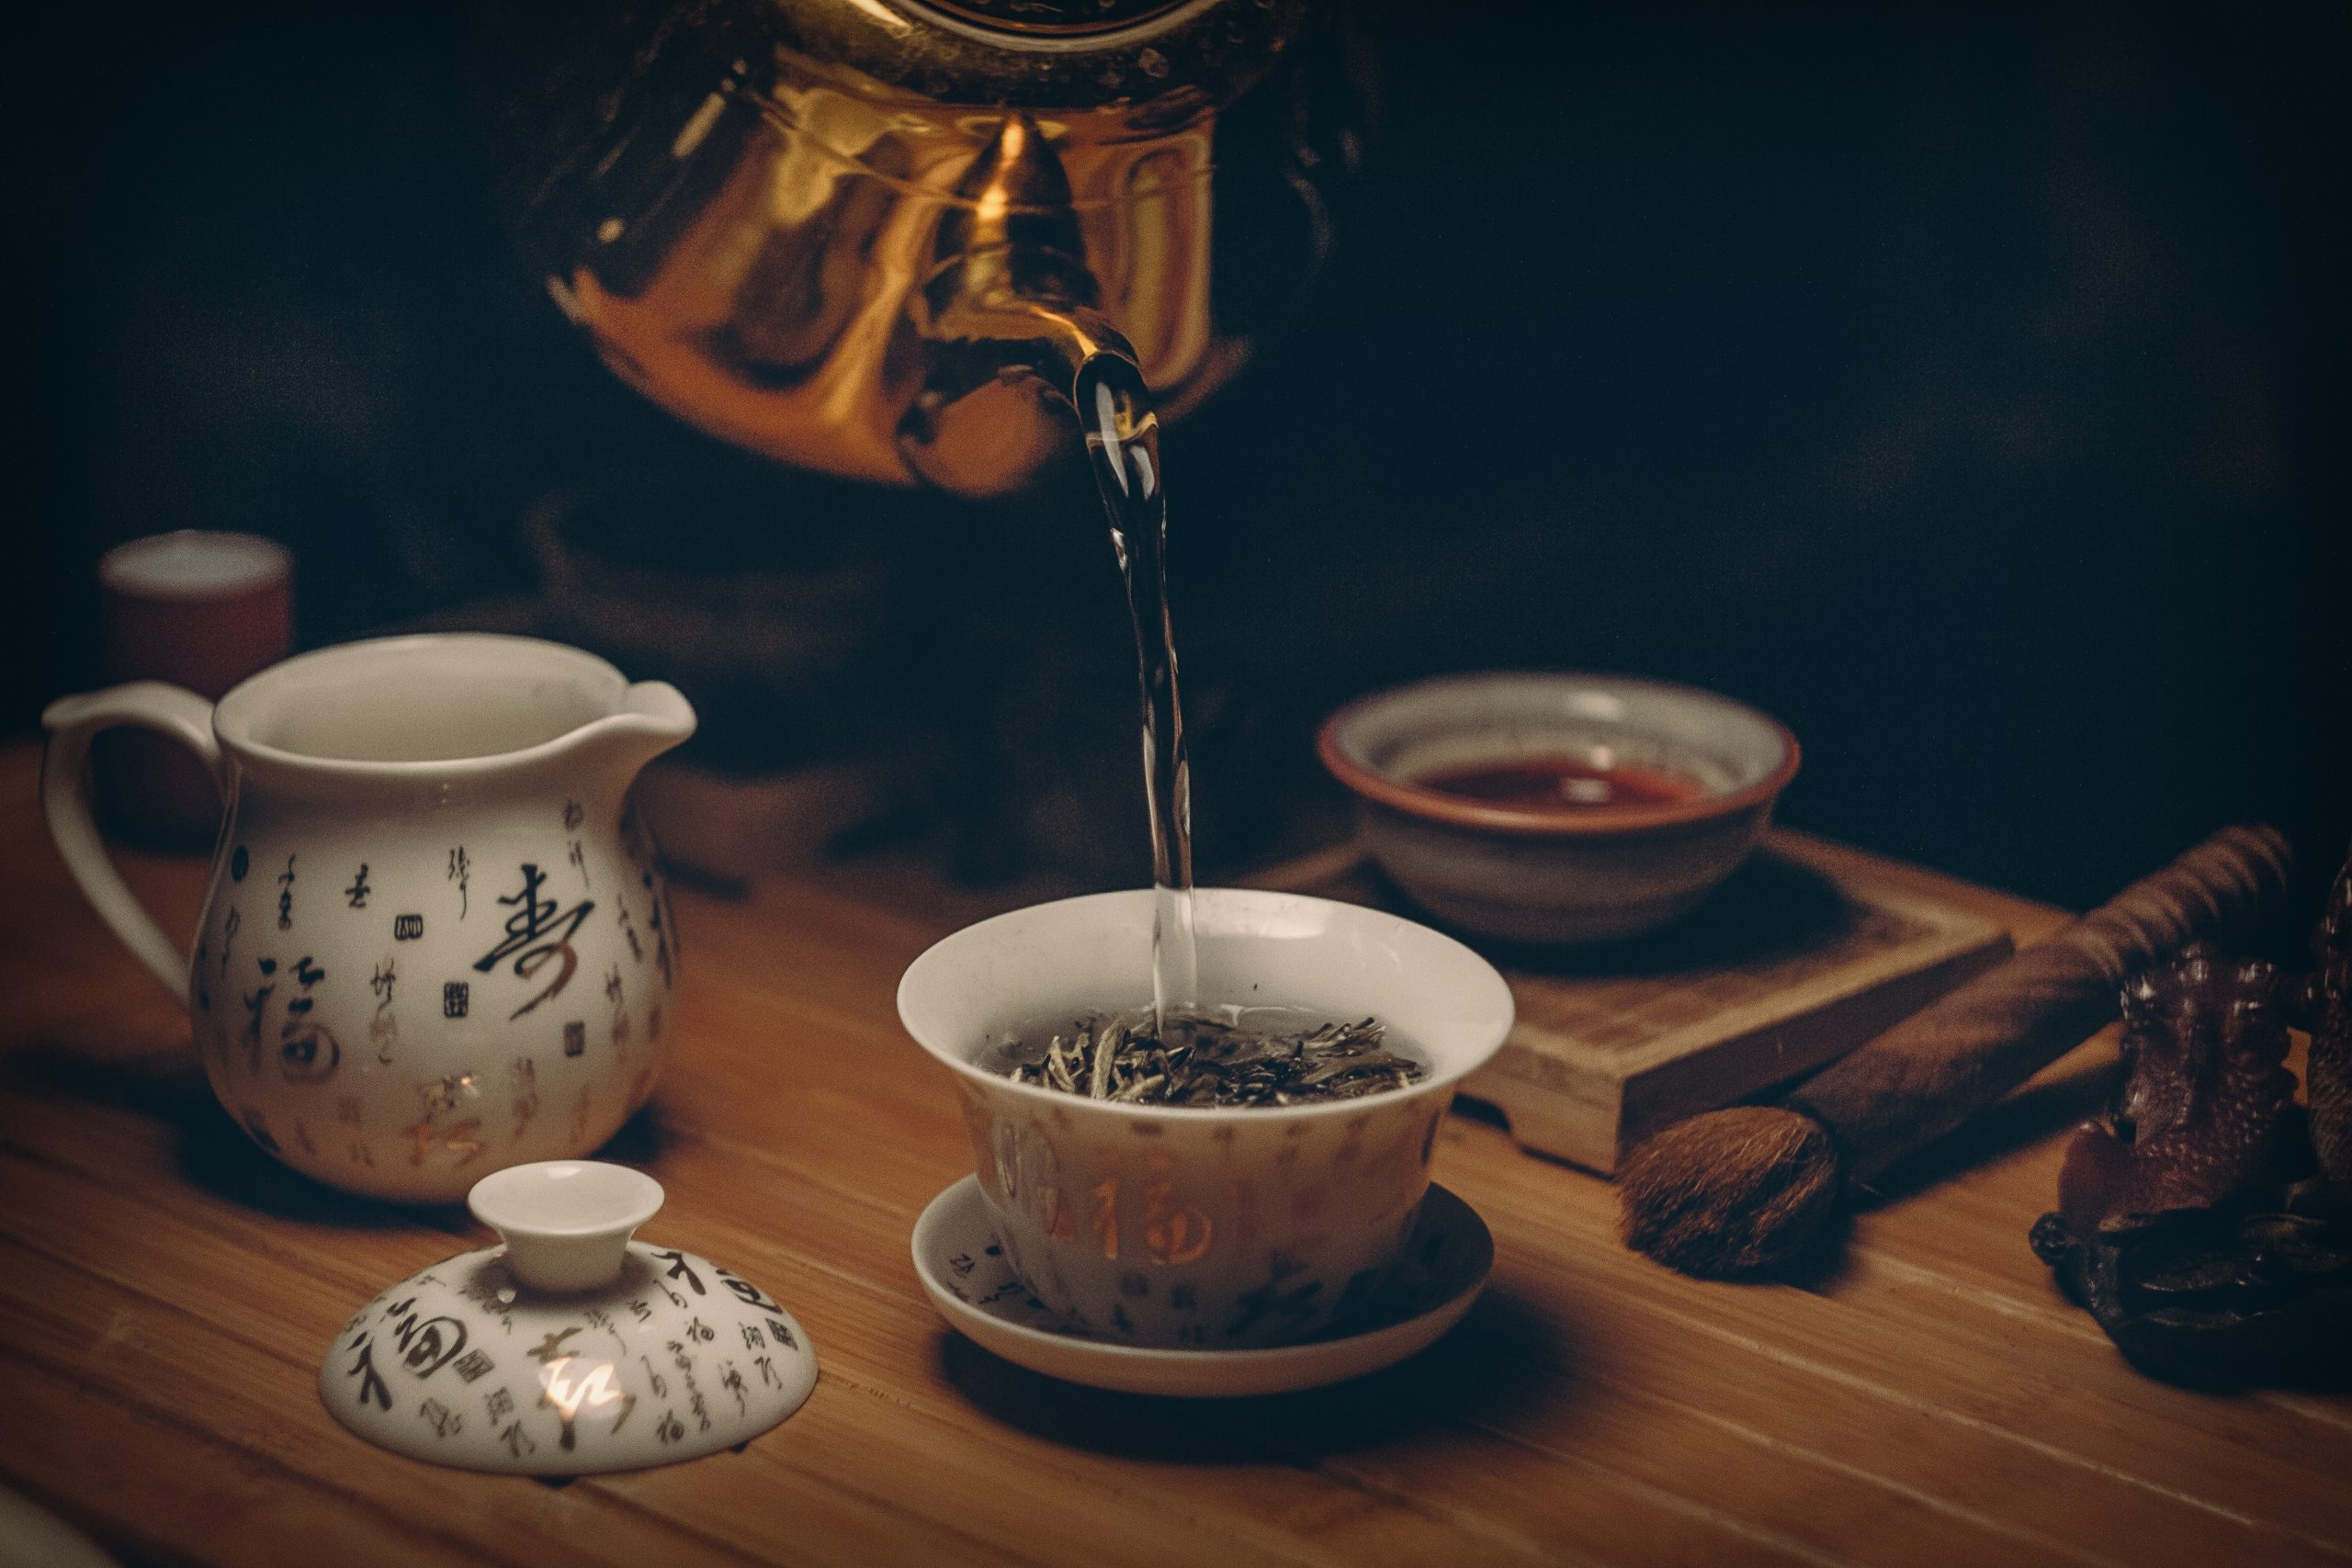 SOURCING CHINESE TEA FOR SALE ON THE AMAZON MARKETPLACE